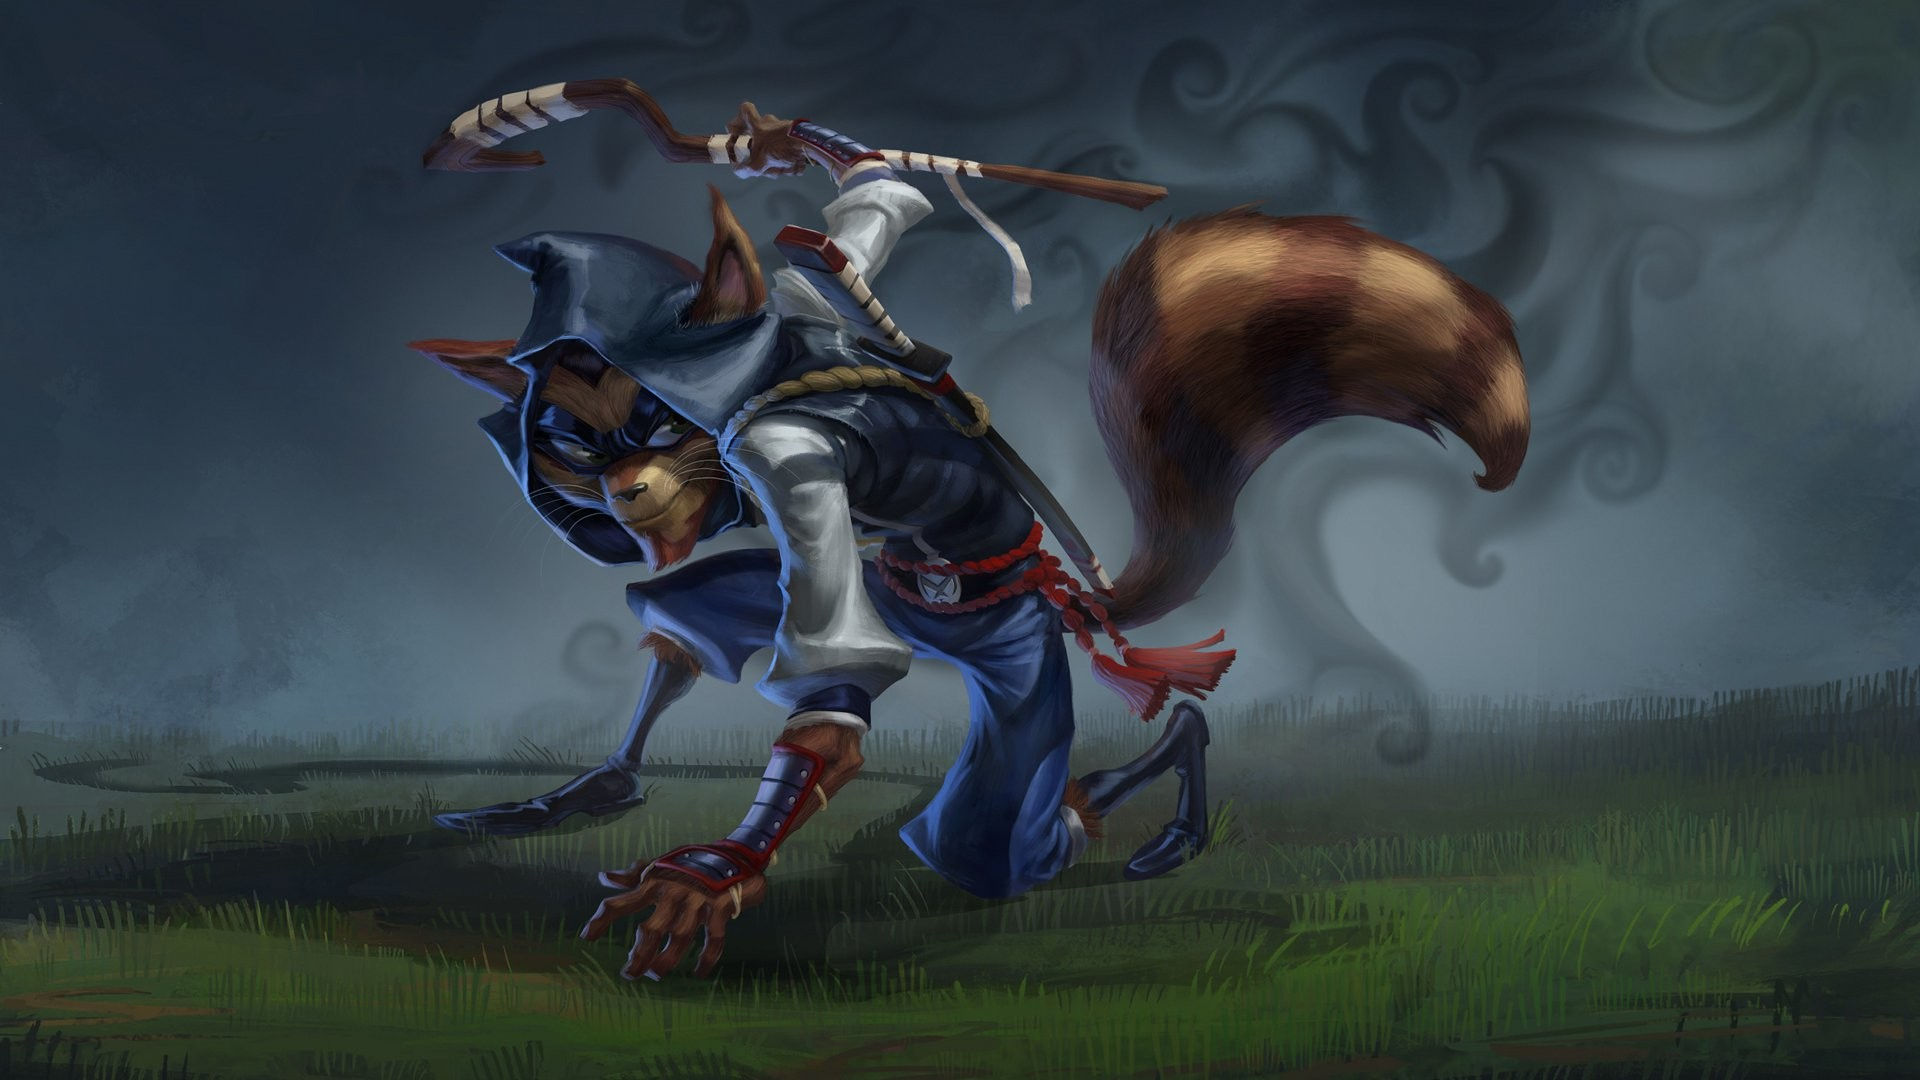 Sly Cooper Thieves In Time Computer Wallpapers, Desktop Backgrounds .